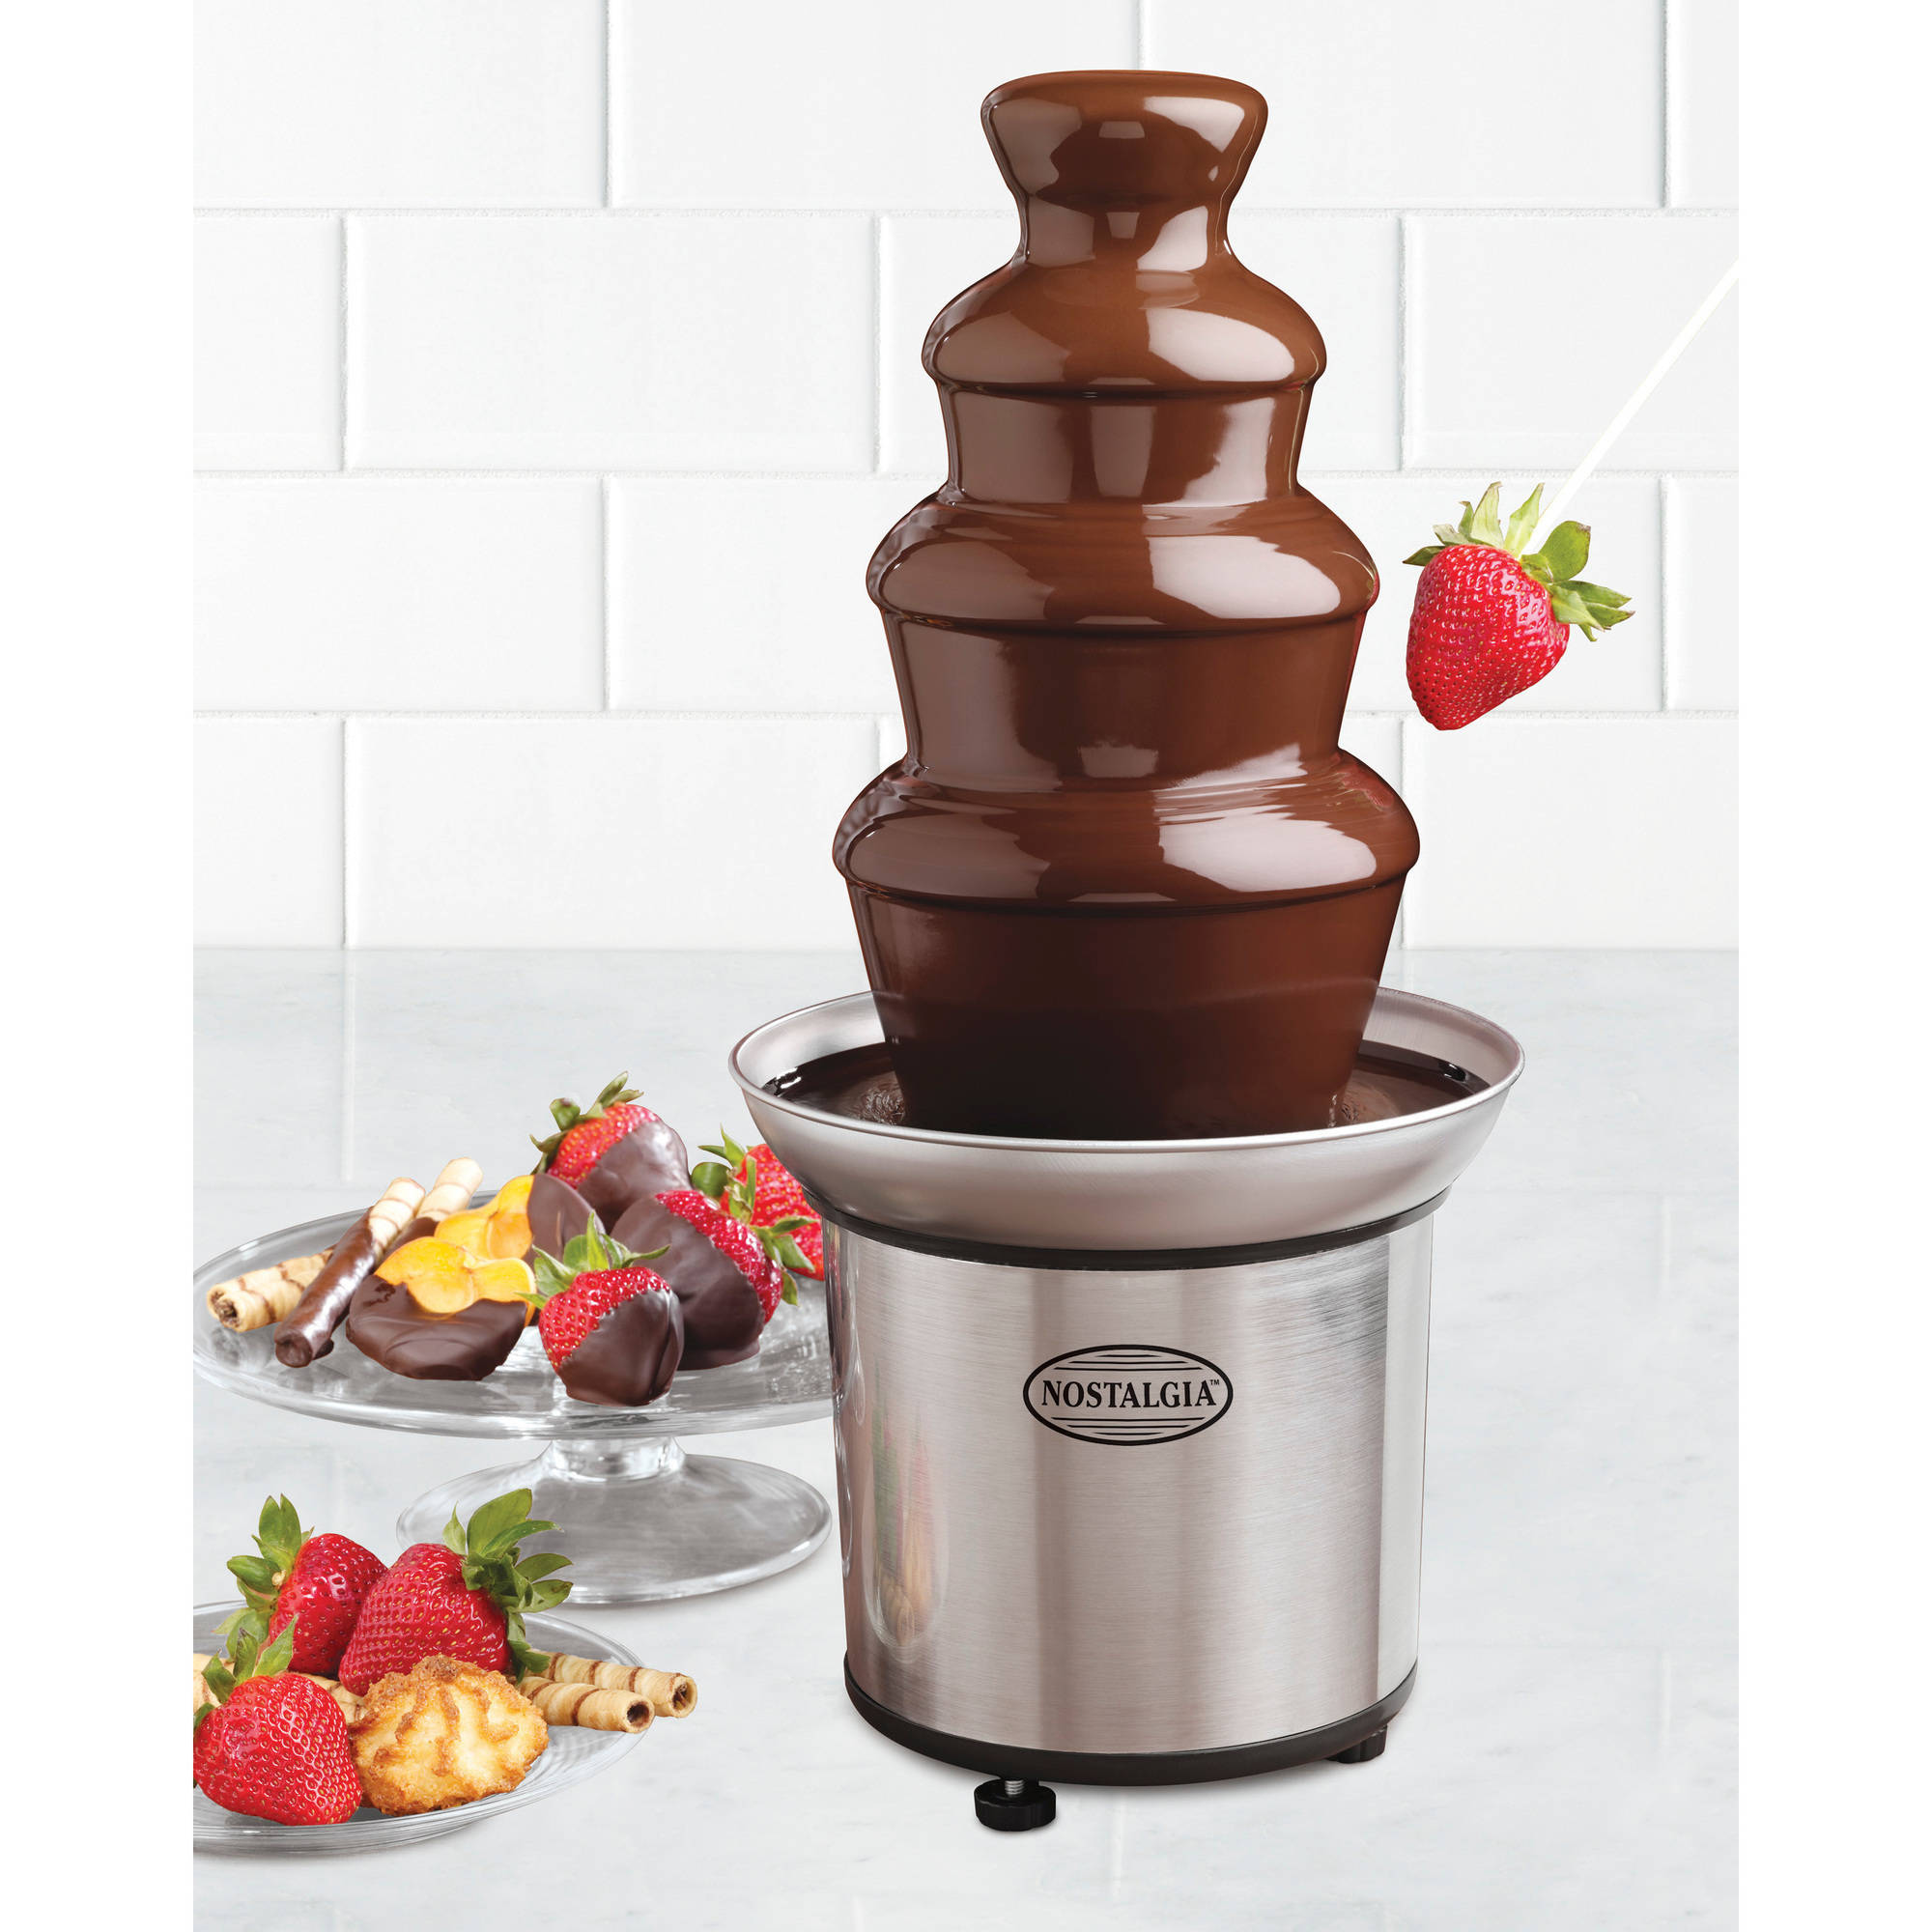 Nostalgia Electrics 3-Tier Stainless Steel Chocolate Fondue Fountain, CFF986